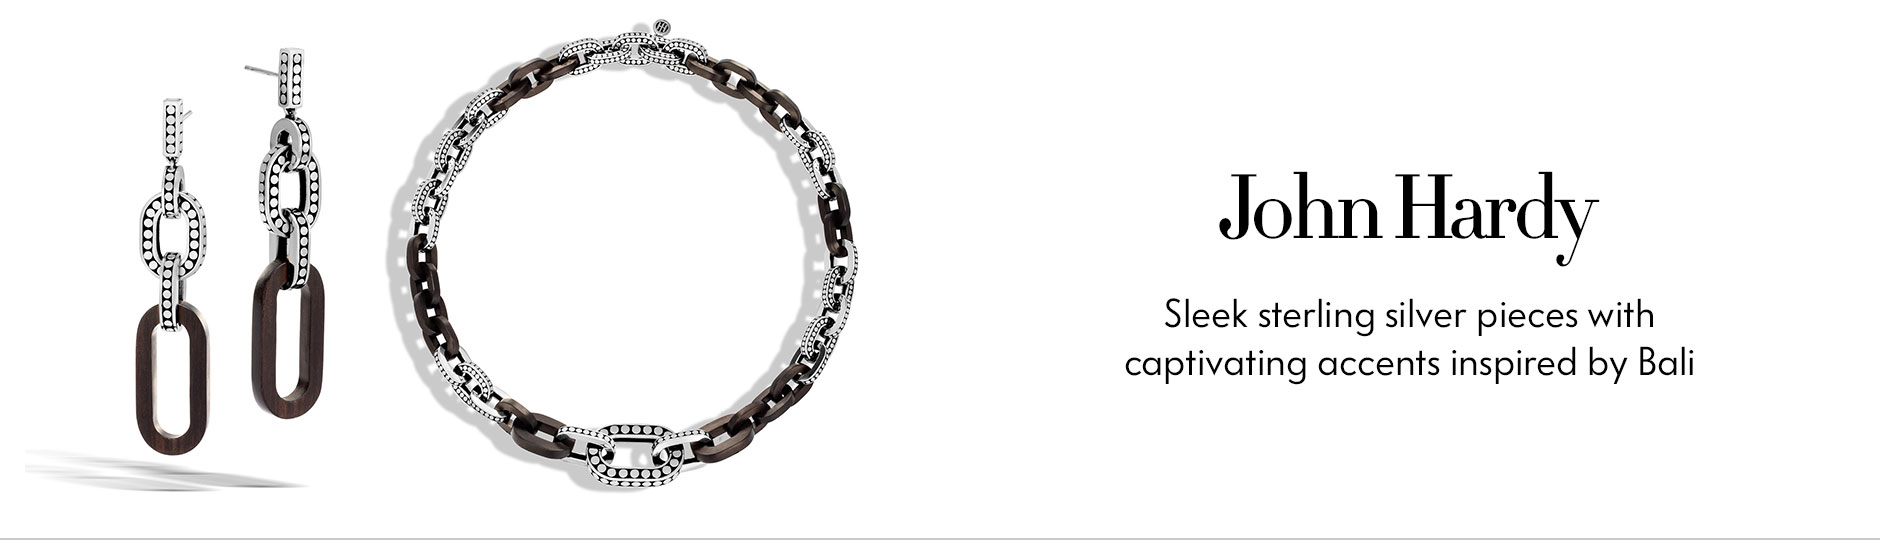 John Hardy - Sleek sterling silver pieces with captivating accents inspired by Bali